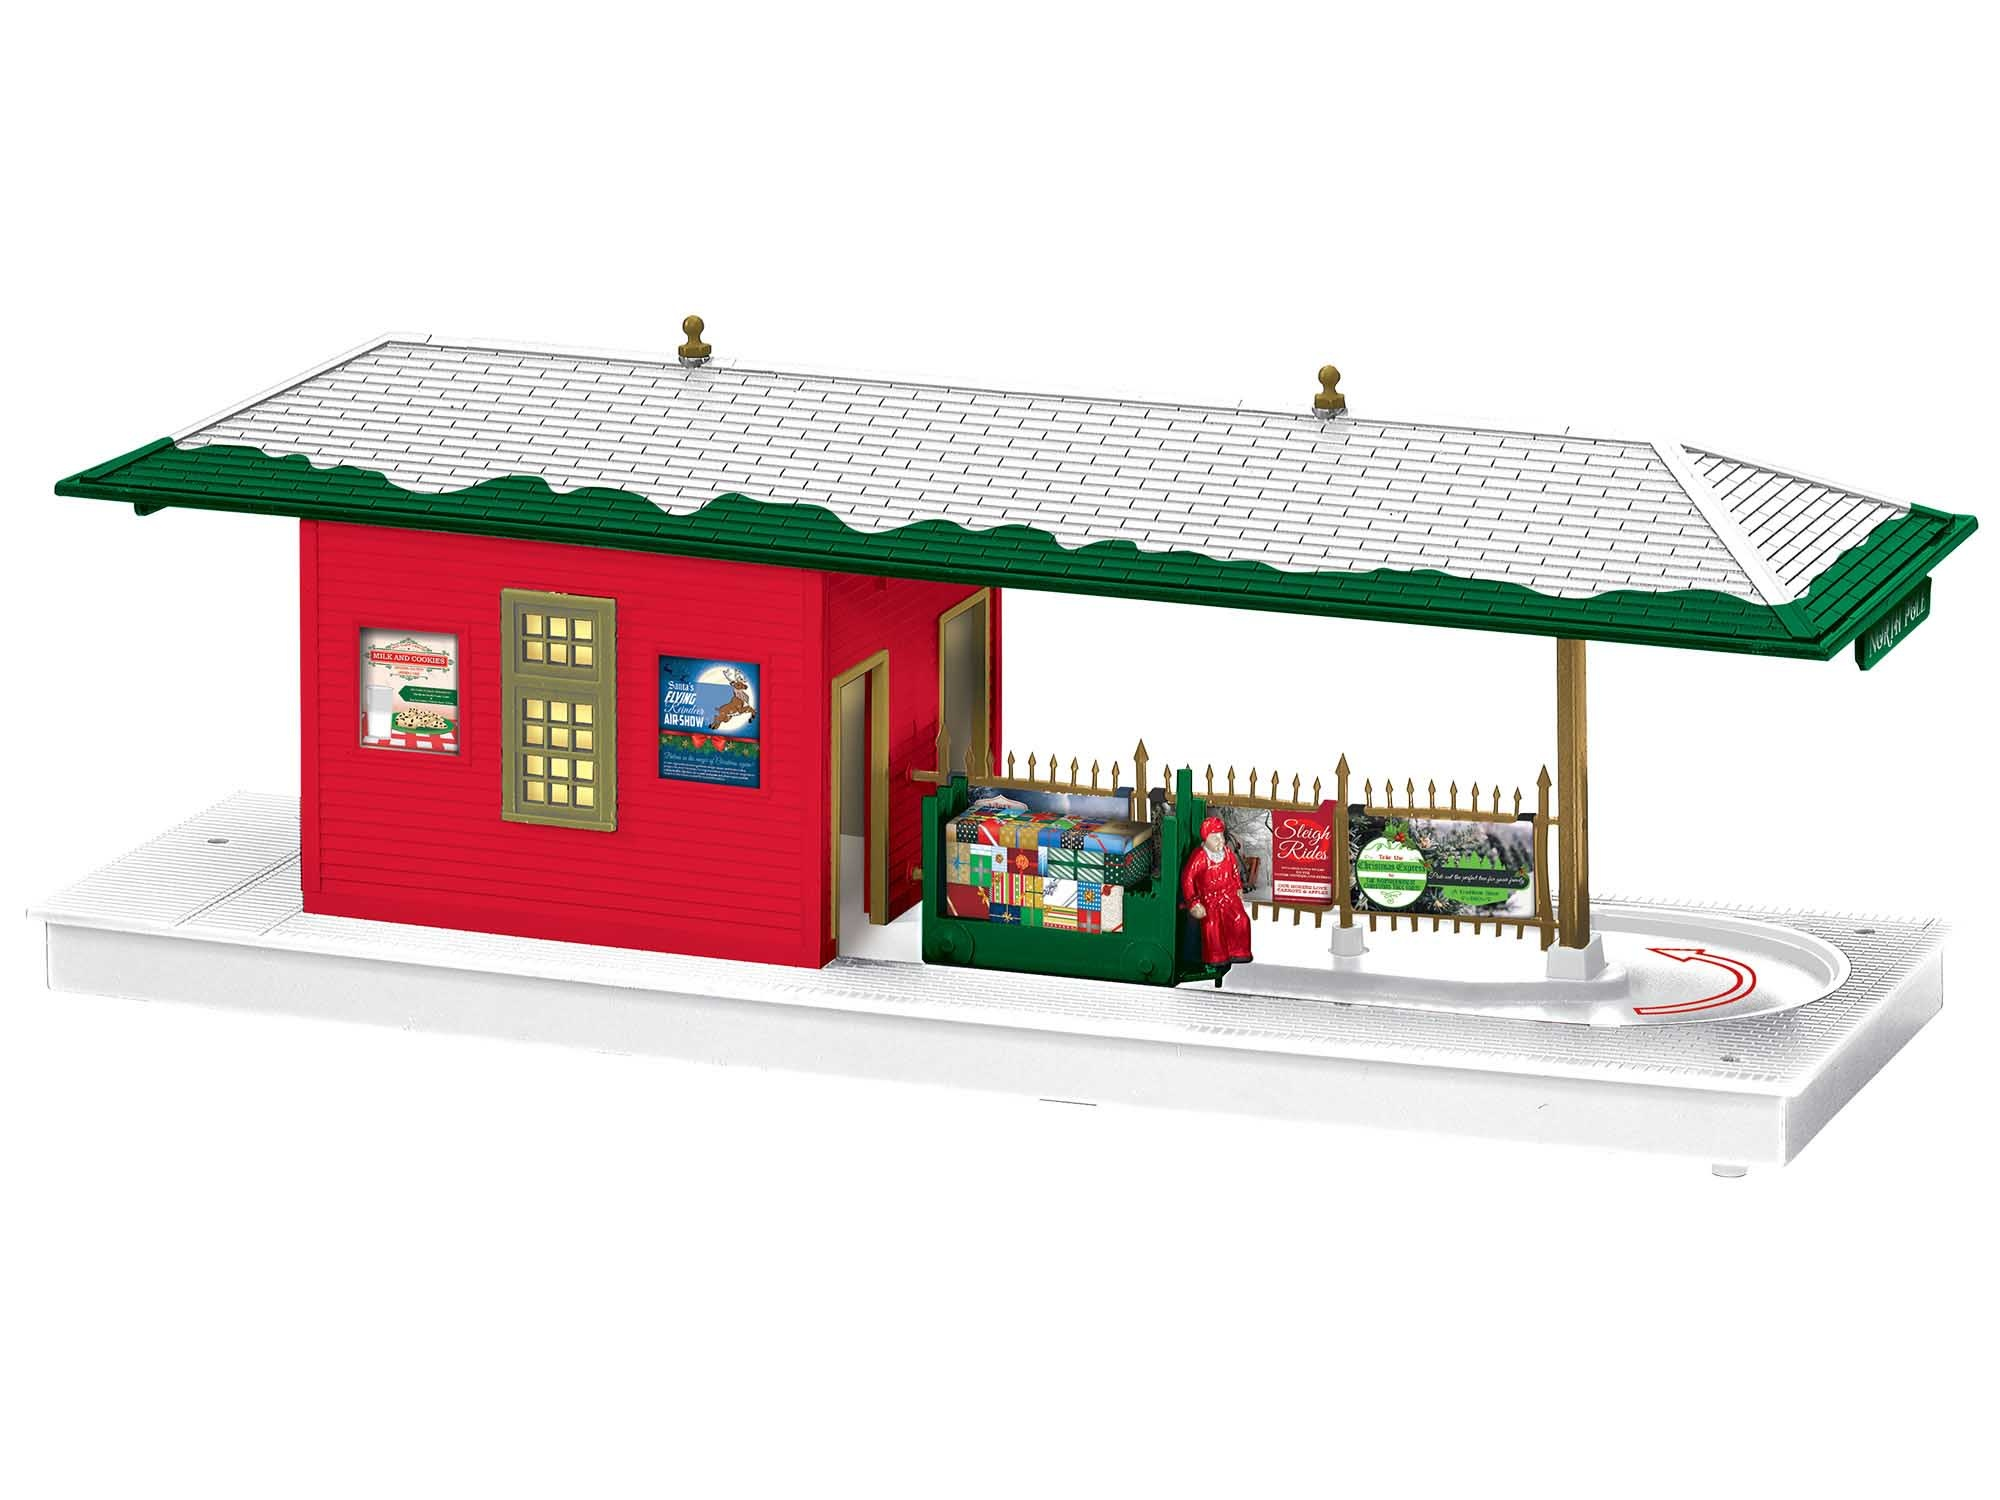 Lionel #2029180, Lionel Christmas Operating Freight Station